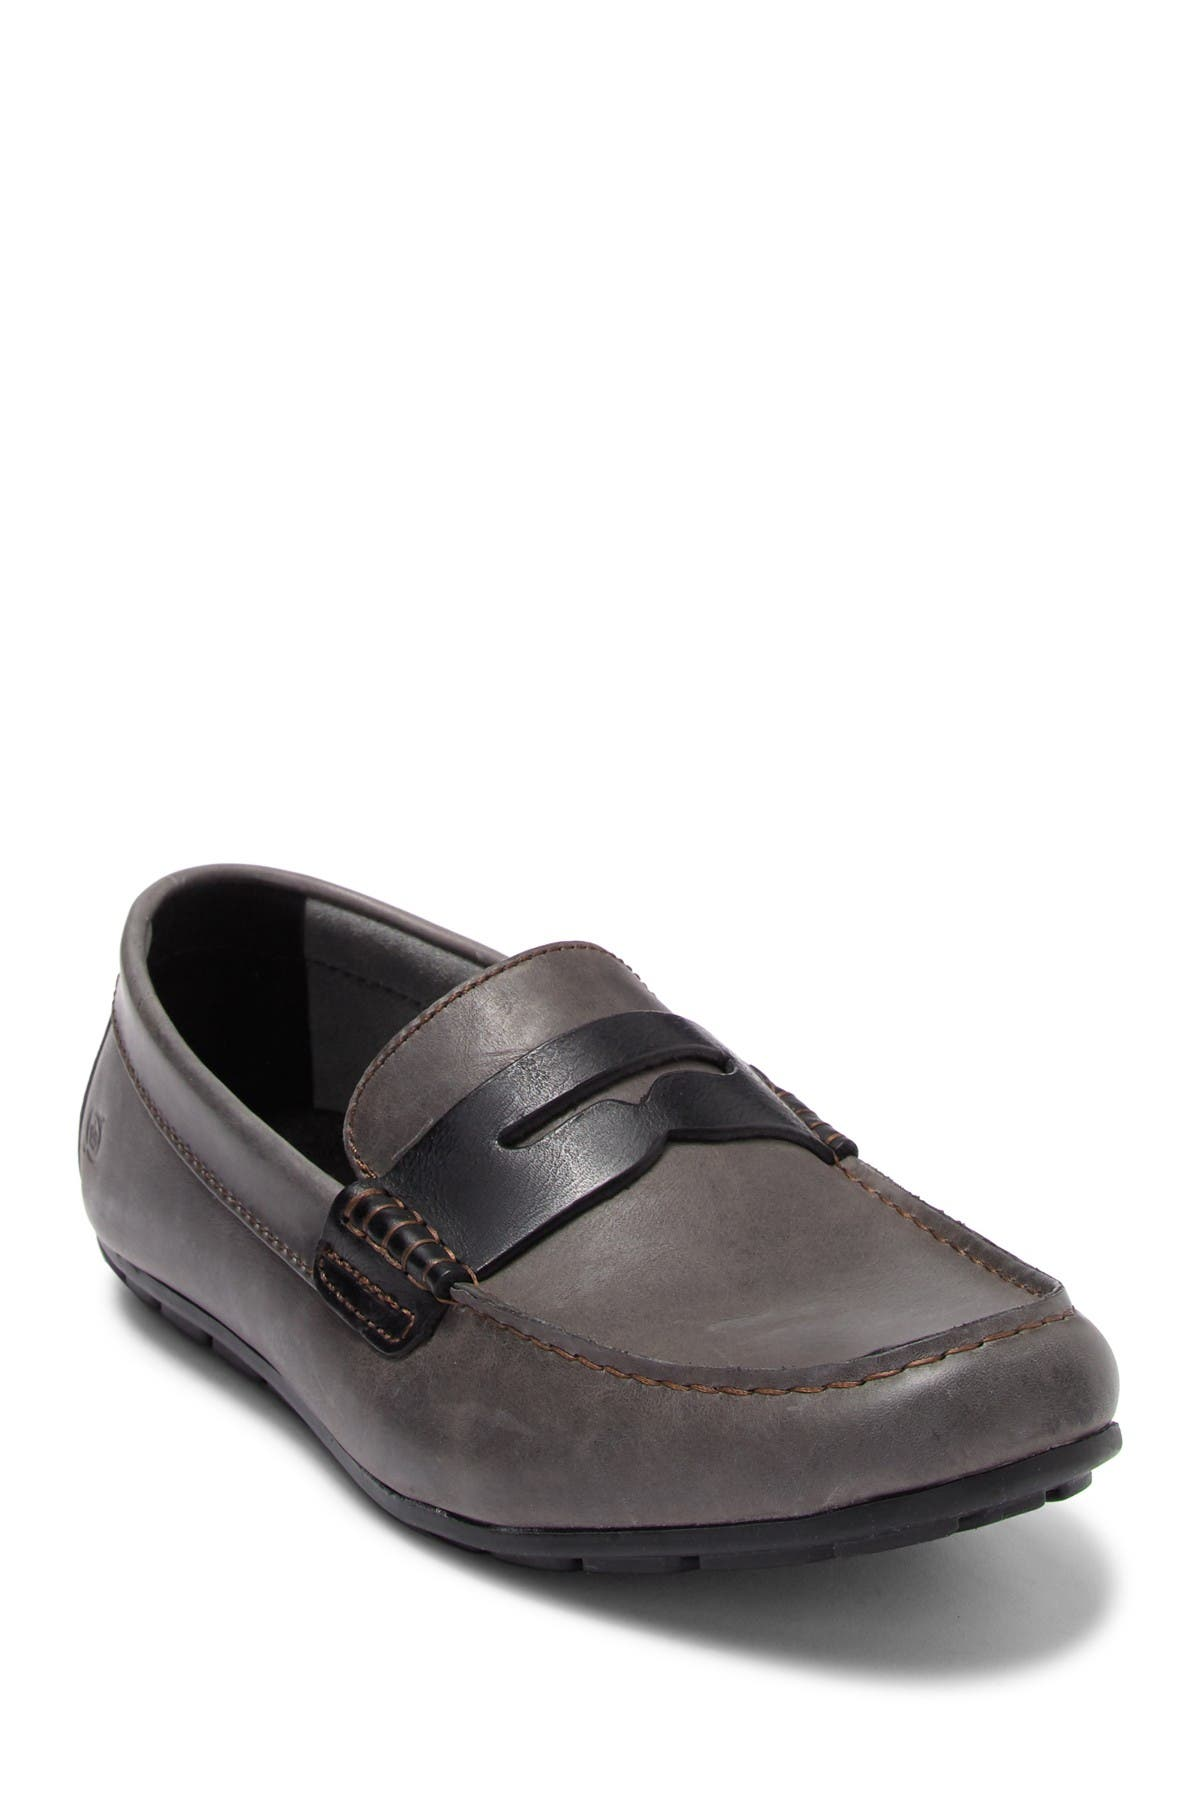 Image of Born Andes Leather Loafer